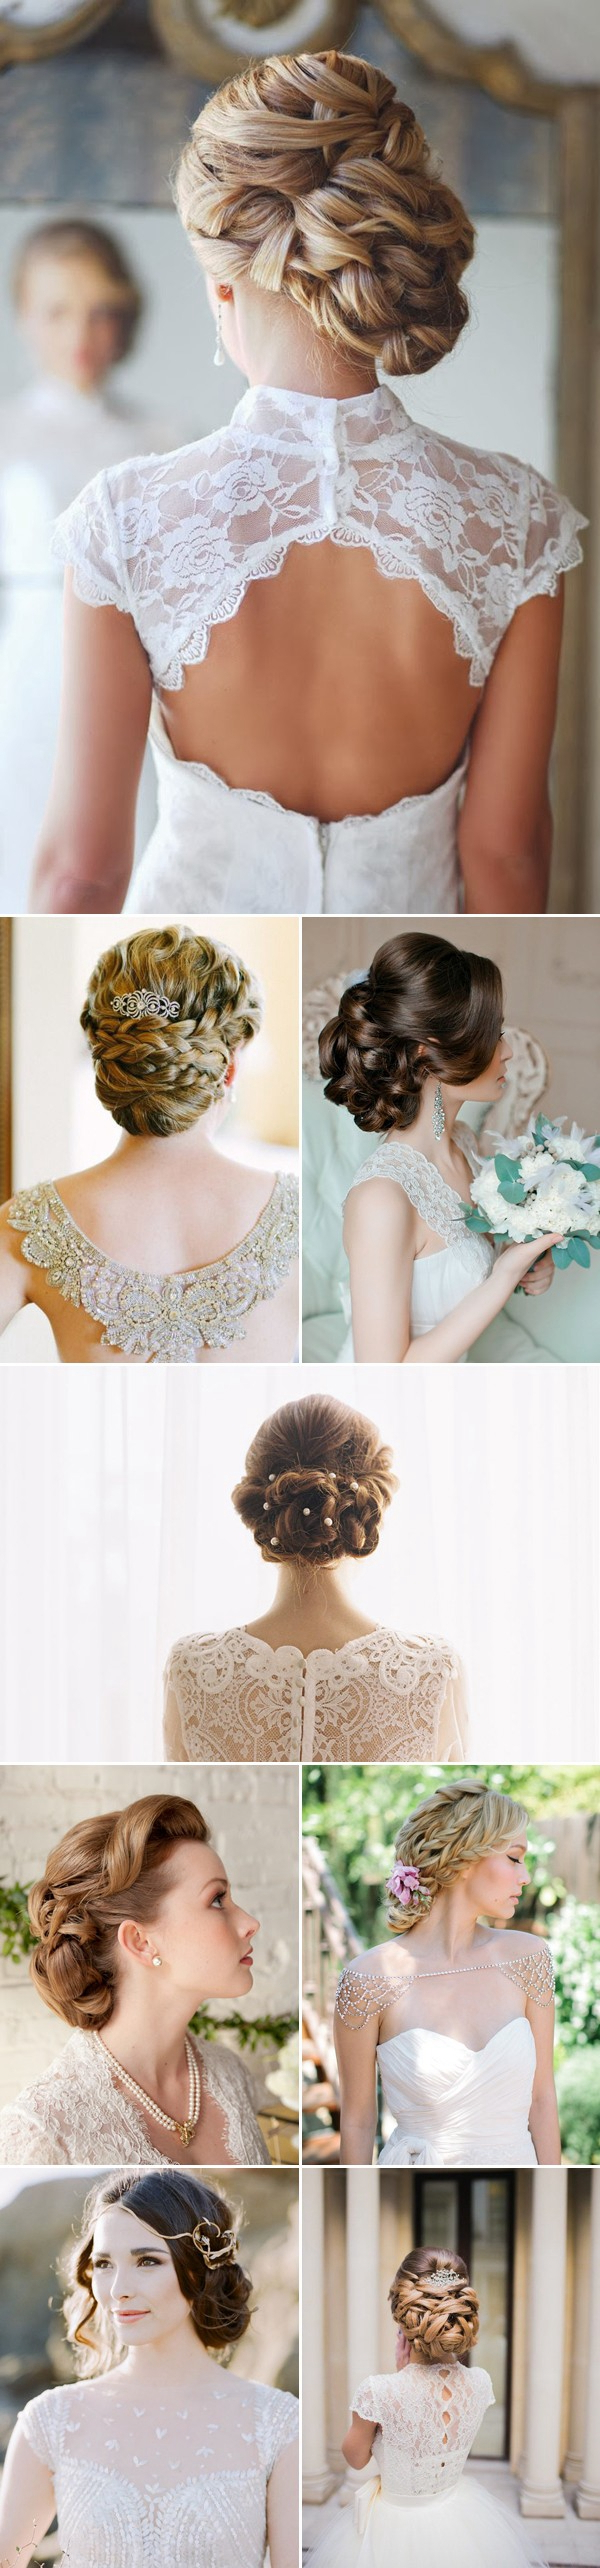 100+ Romantic Long Wedding Hairstyles 2019 – Curls, Half Up, Updos For 2017 Romantic Bridal Hairstyles For Natural Hair (View 1 of 20)